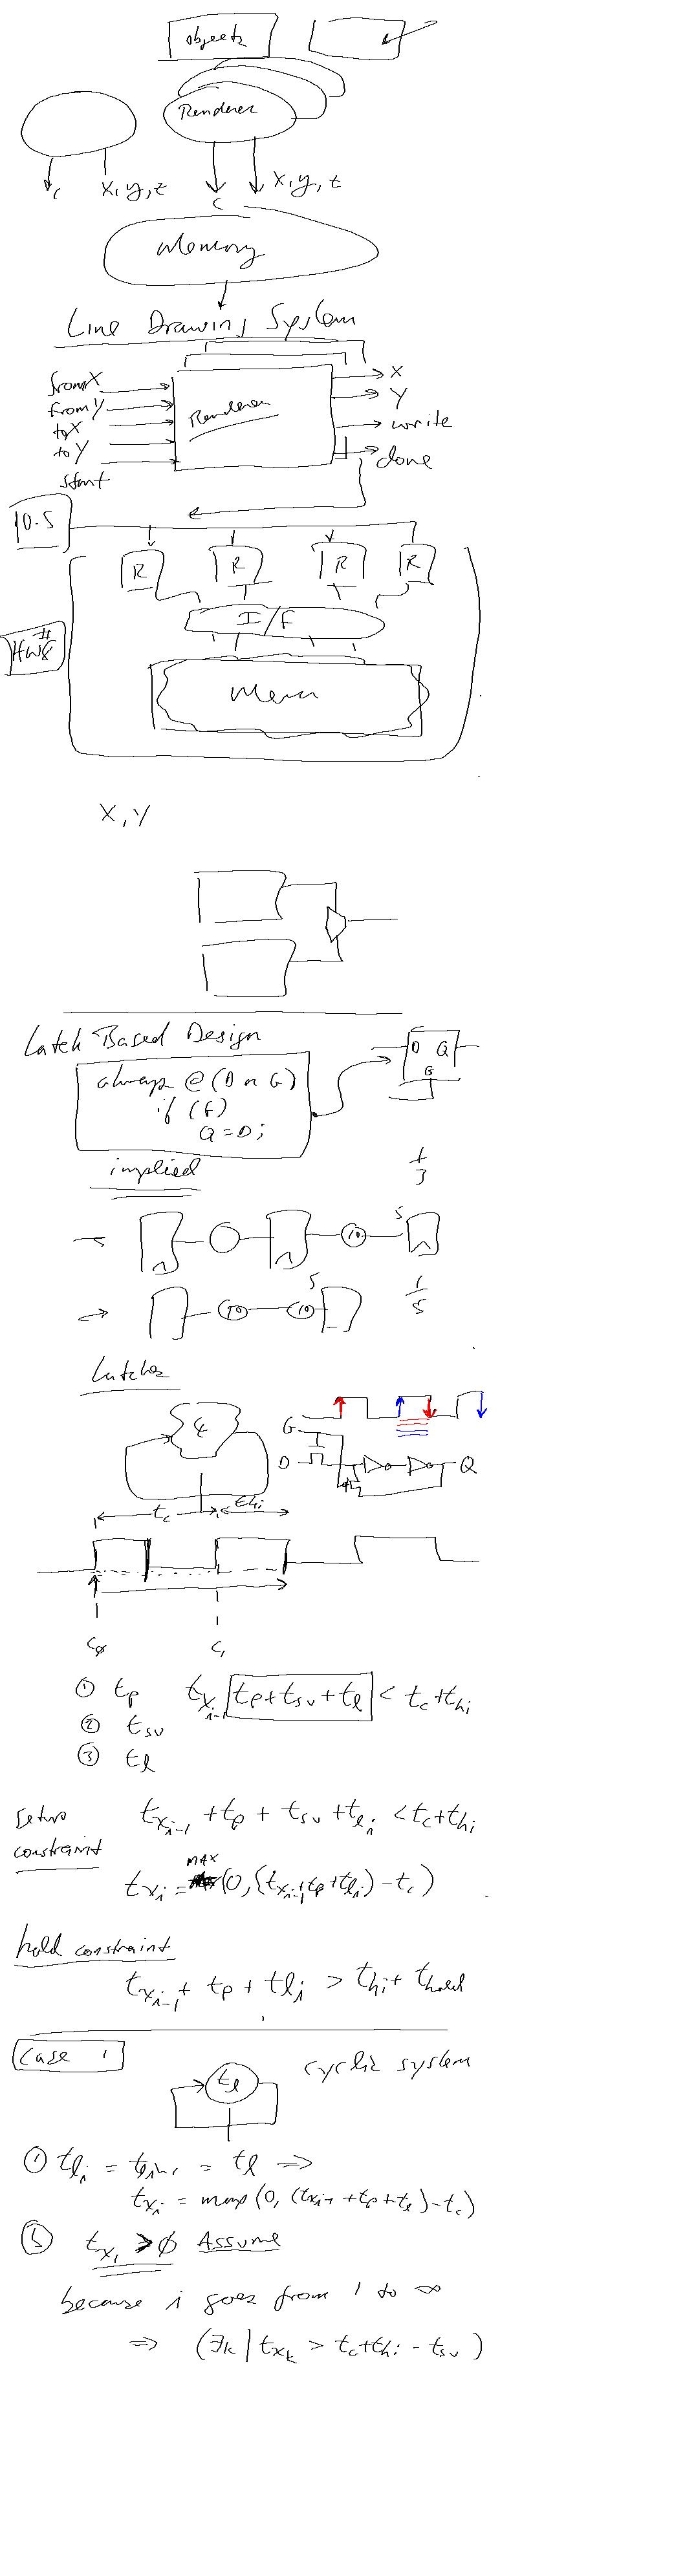 Dda Line Drawing Algorithm Lecture Notes : Day